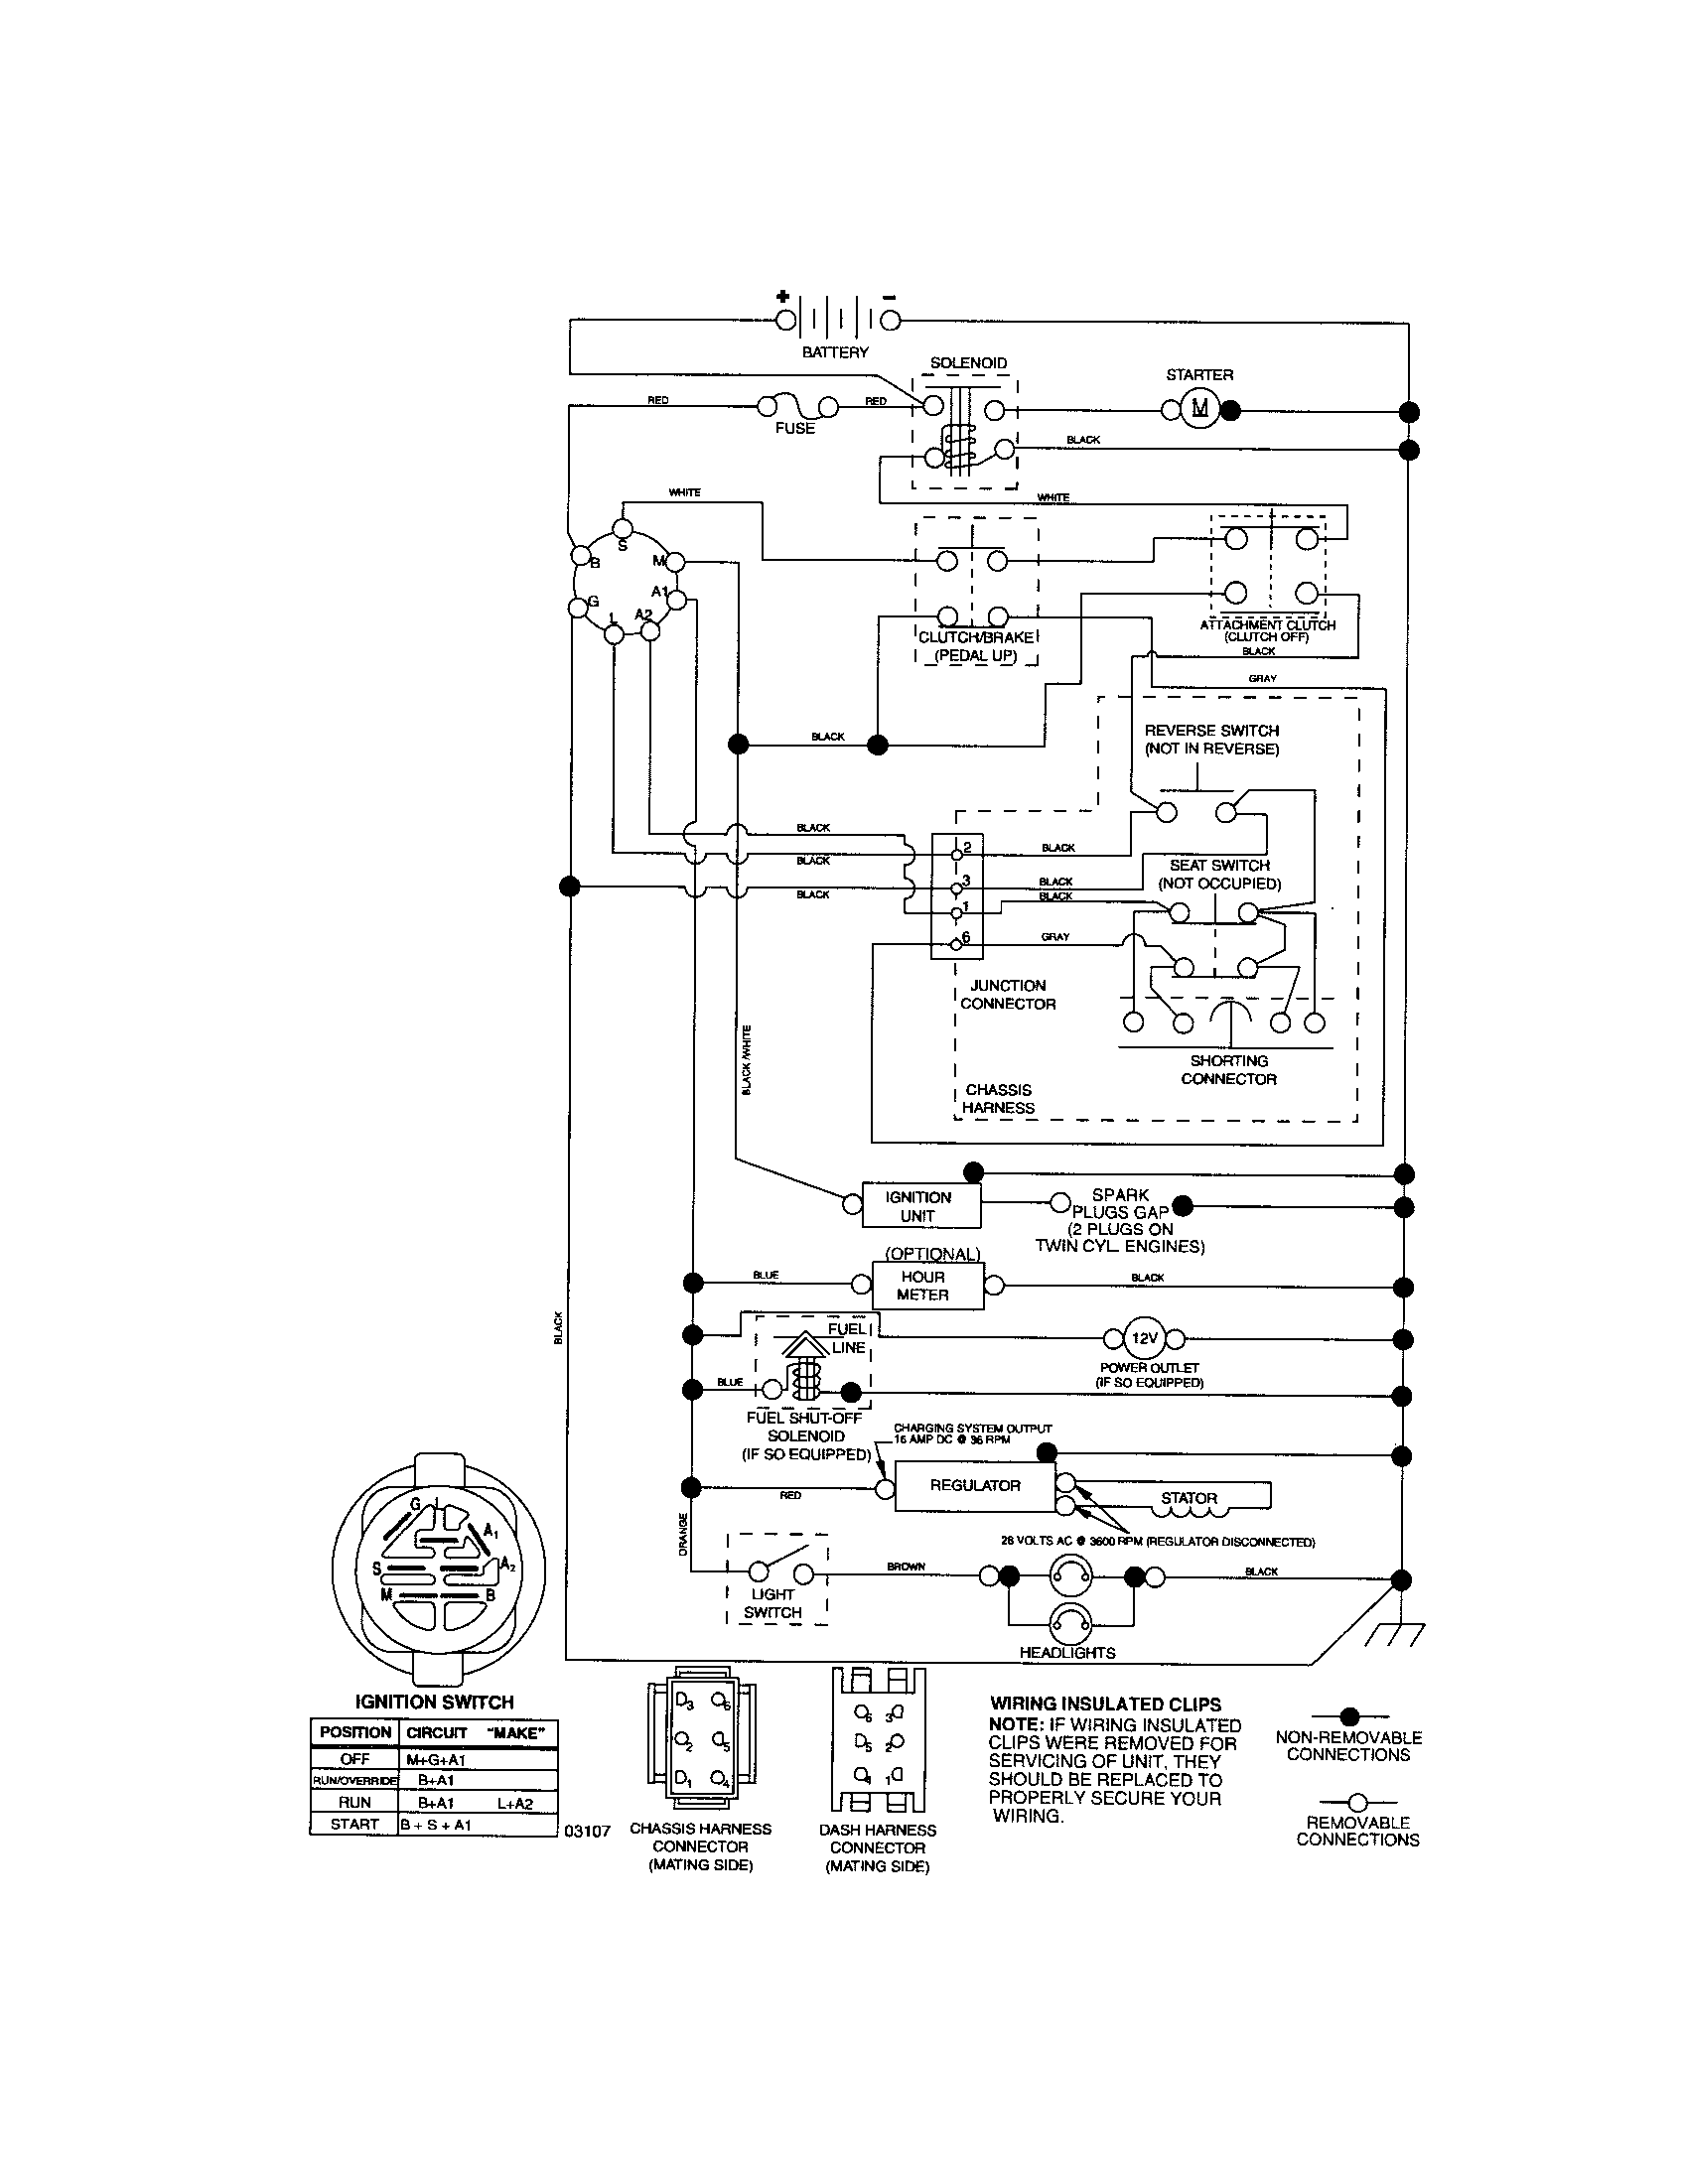 6af5f1447fd13c8443376822ddc1e105 craftsman riding mower electrical diagram wiring diagram murray lawn mower ignition switch wiring diagram at fashall.co